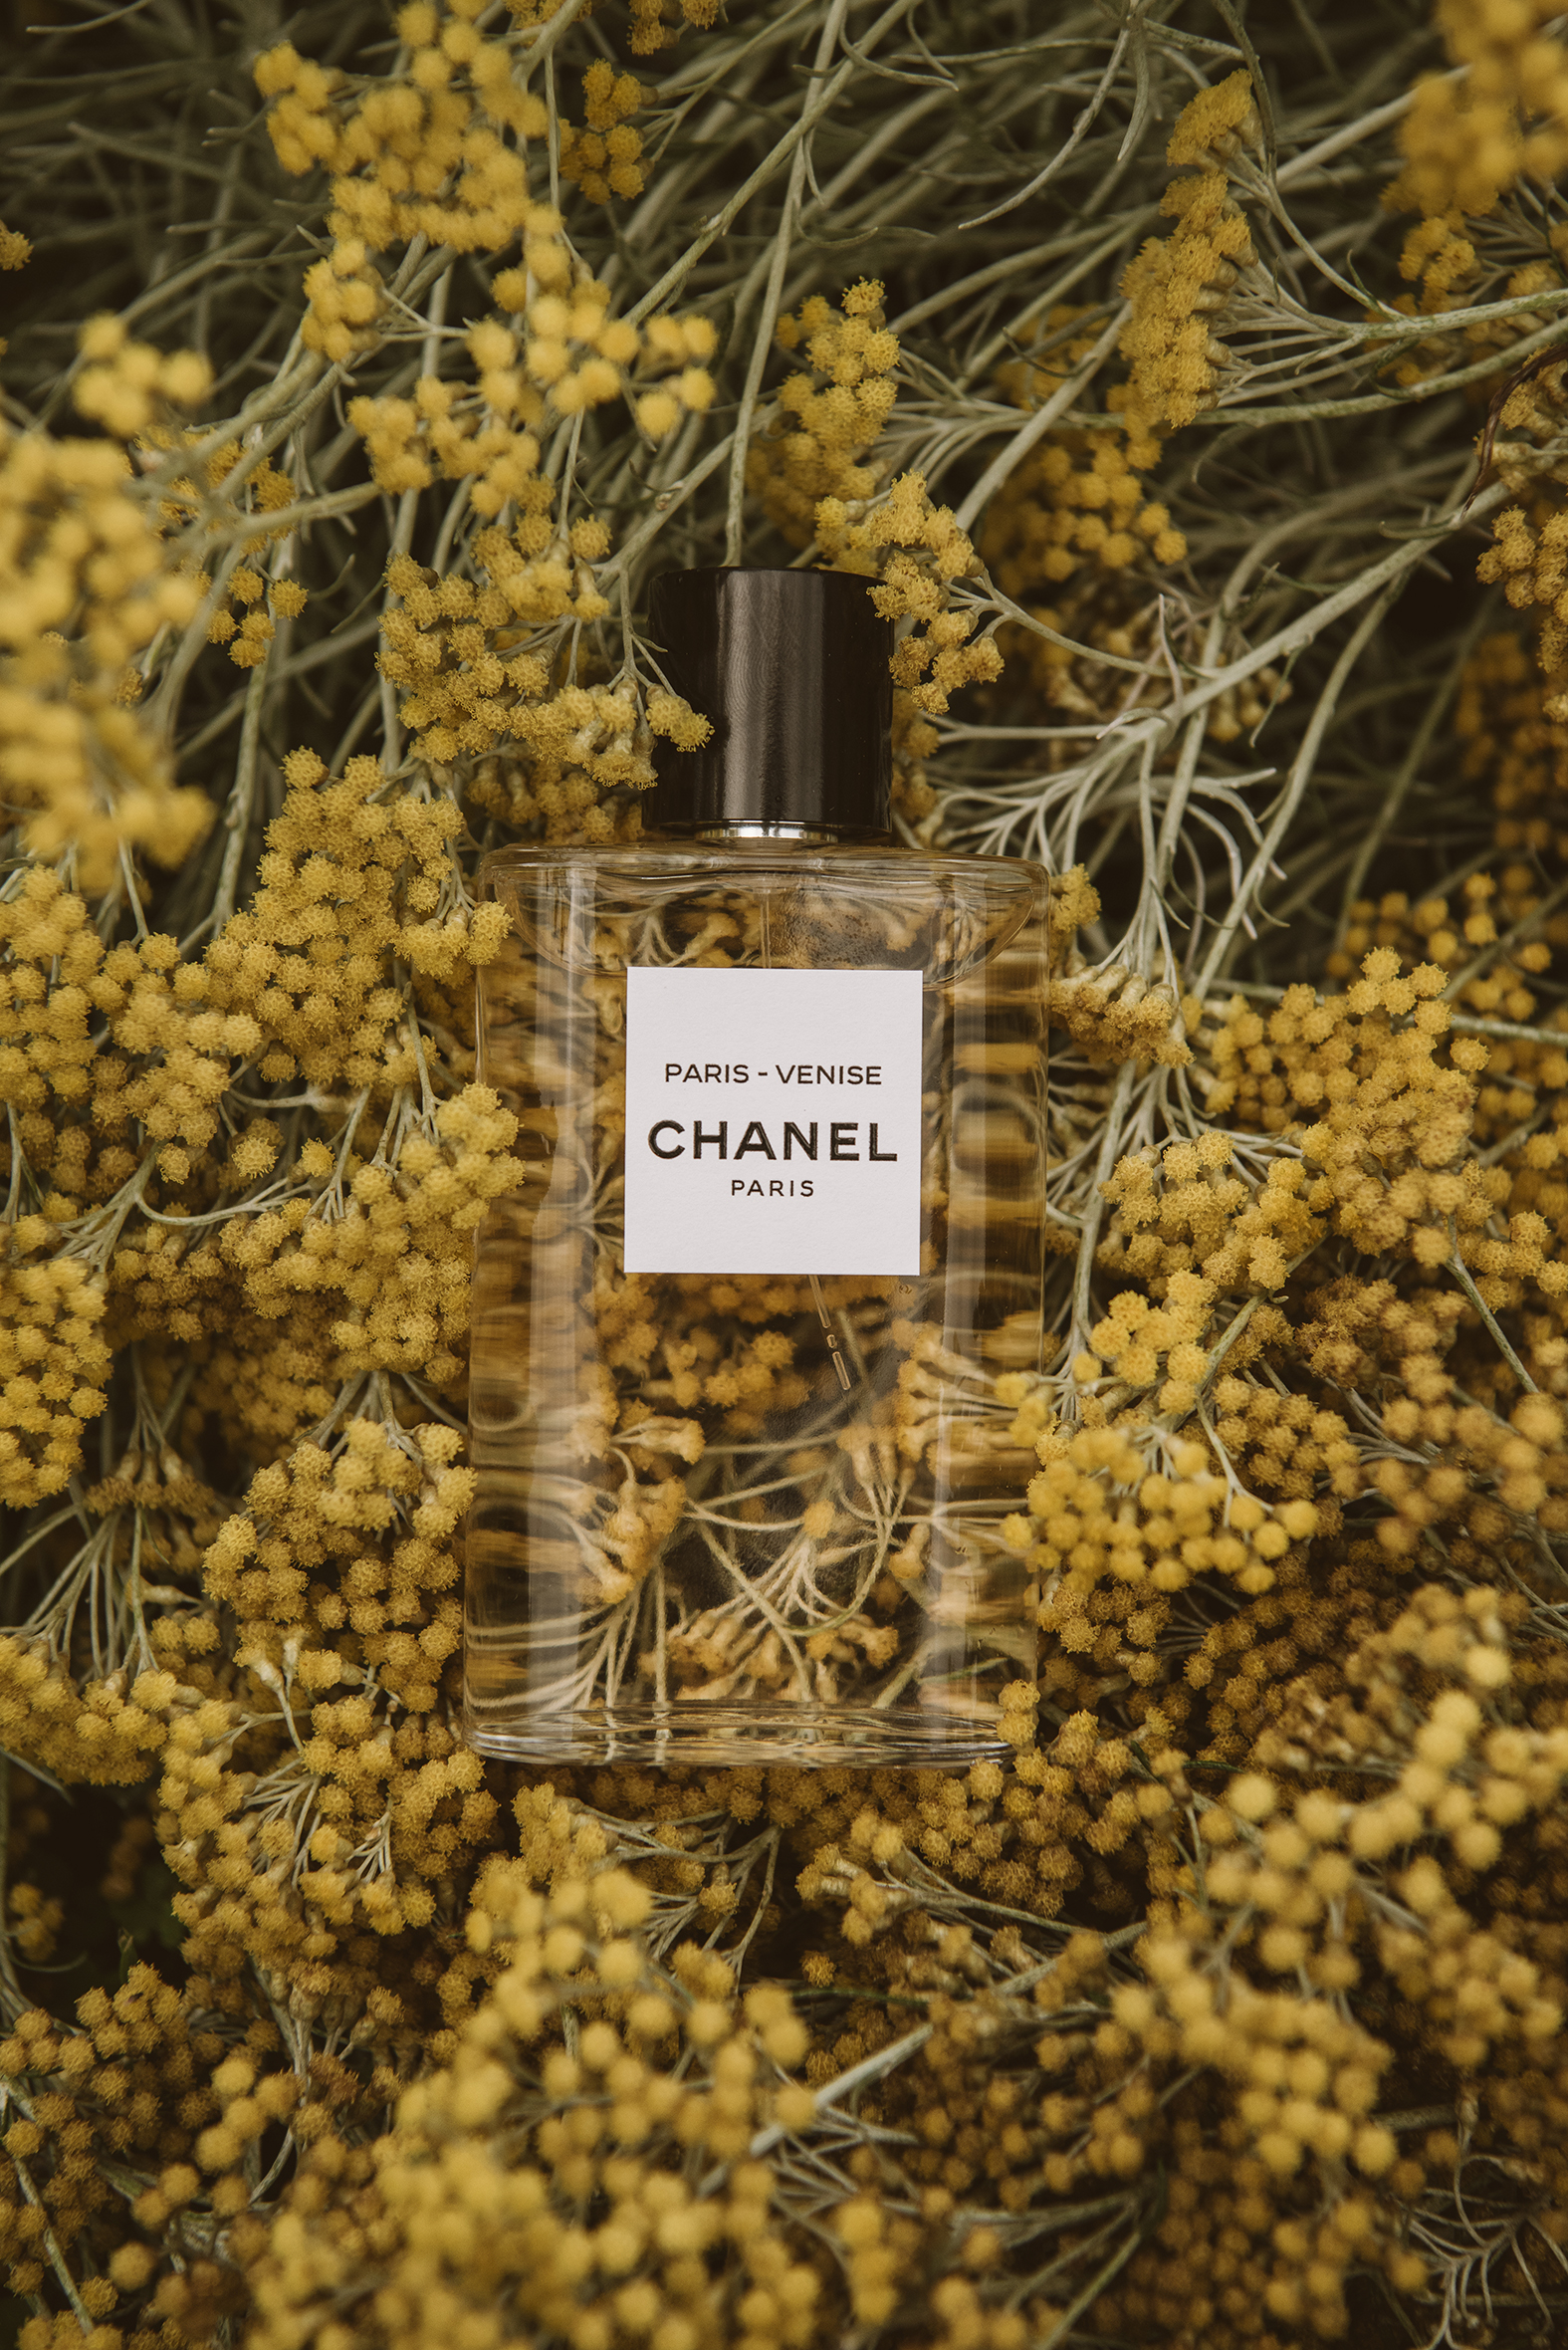 Pathport xLes Eaux de Chanel - An exclusive series of three travel guides inspired by Coco Chanel's summer destinations…